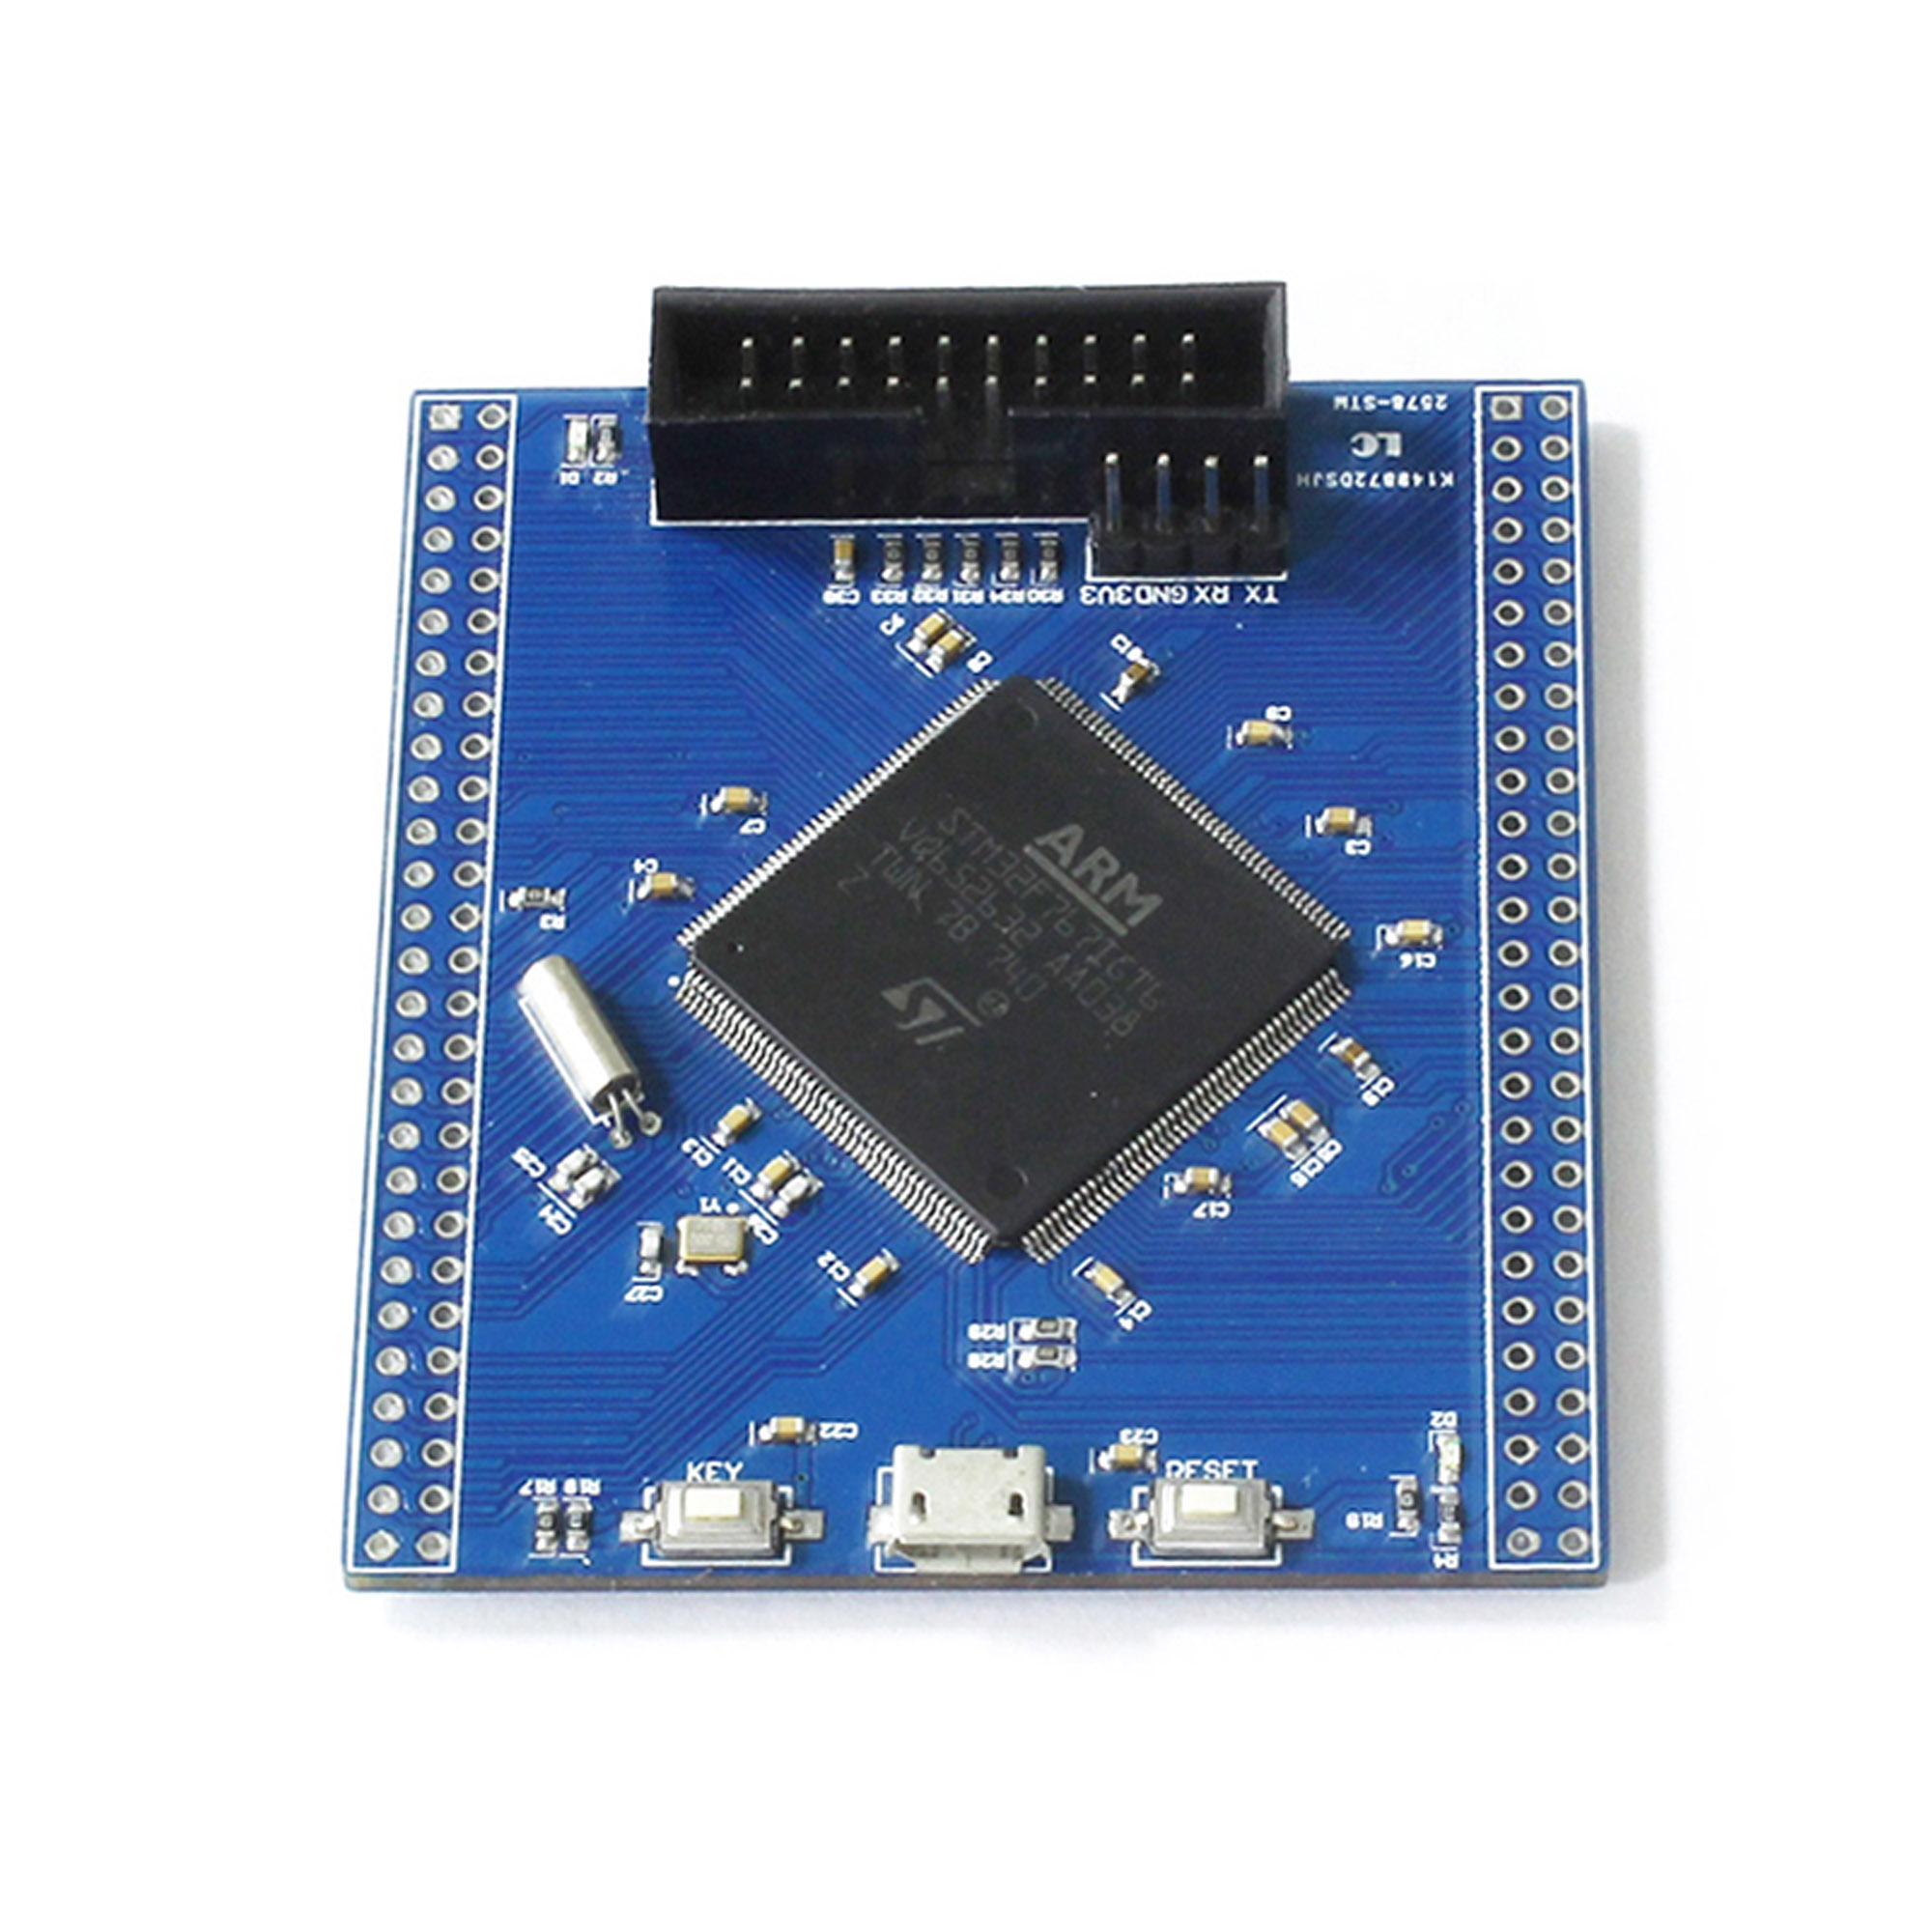 Details about STM32F767 Cortex-M7 Small System STM32F767IGT6 STM32  Development Board US